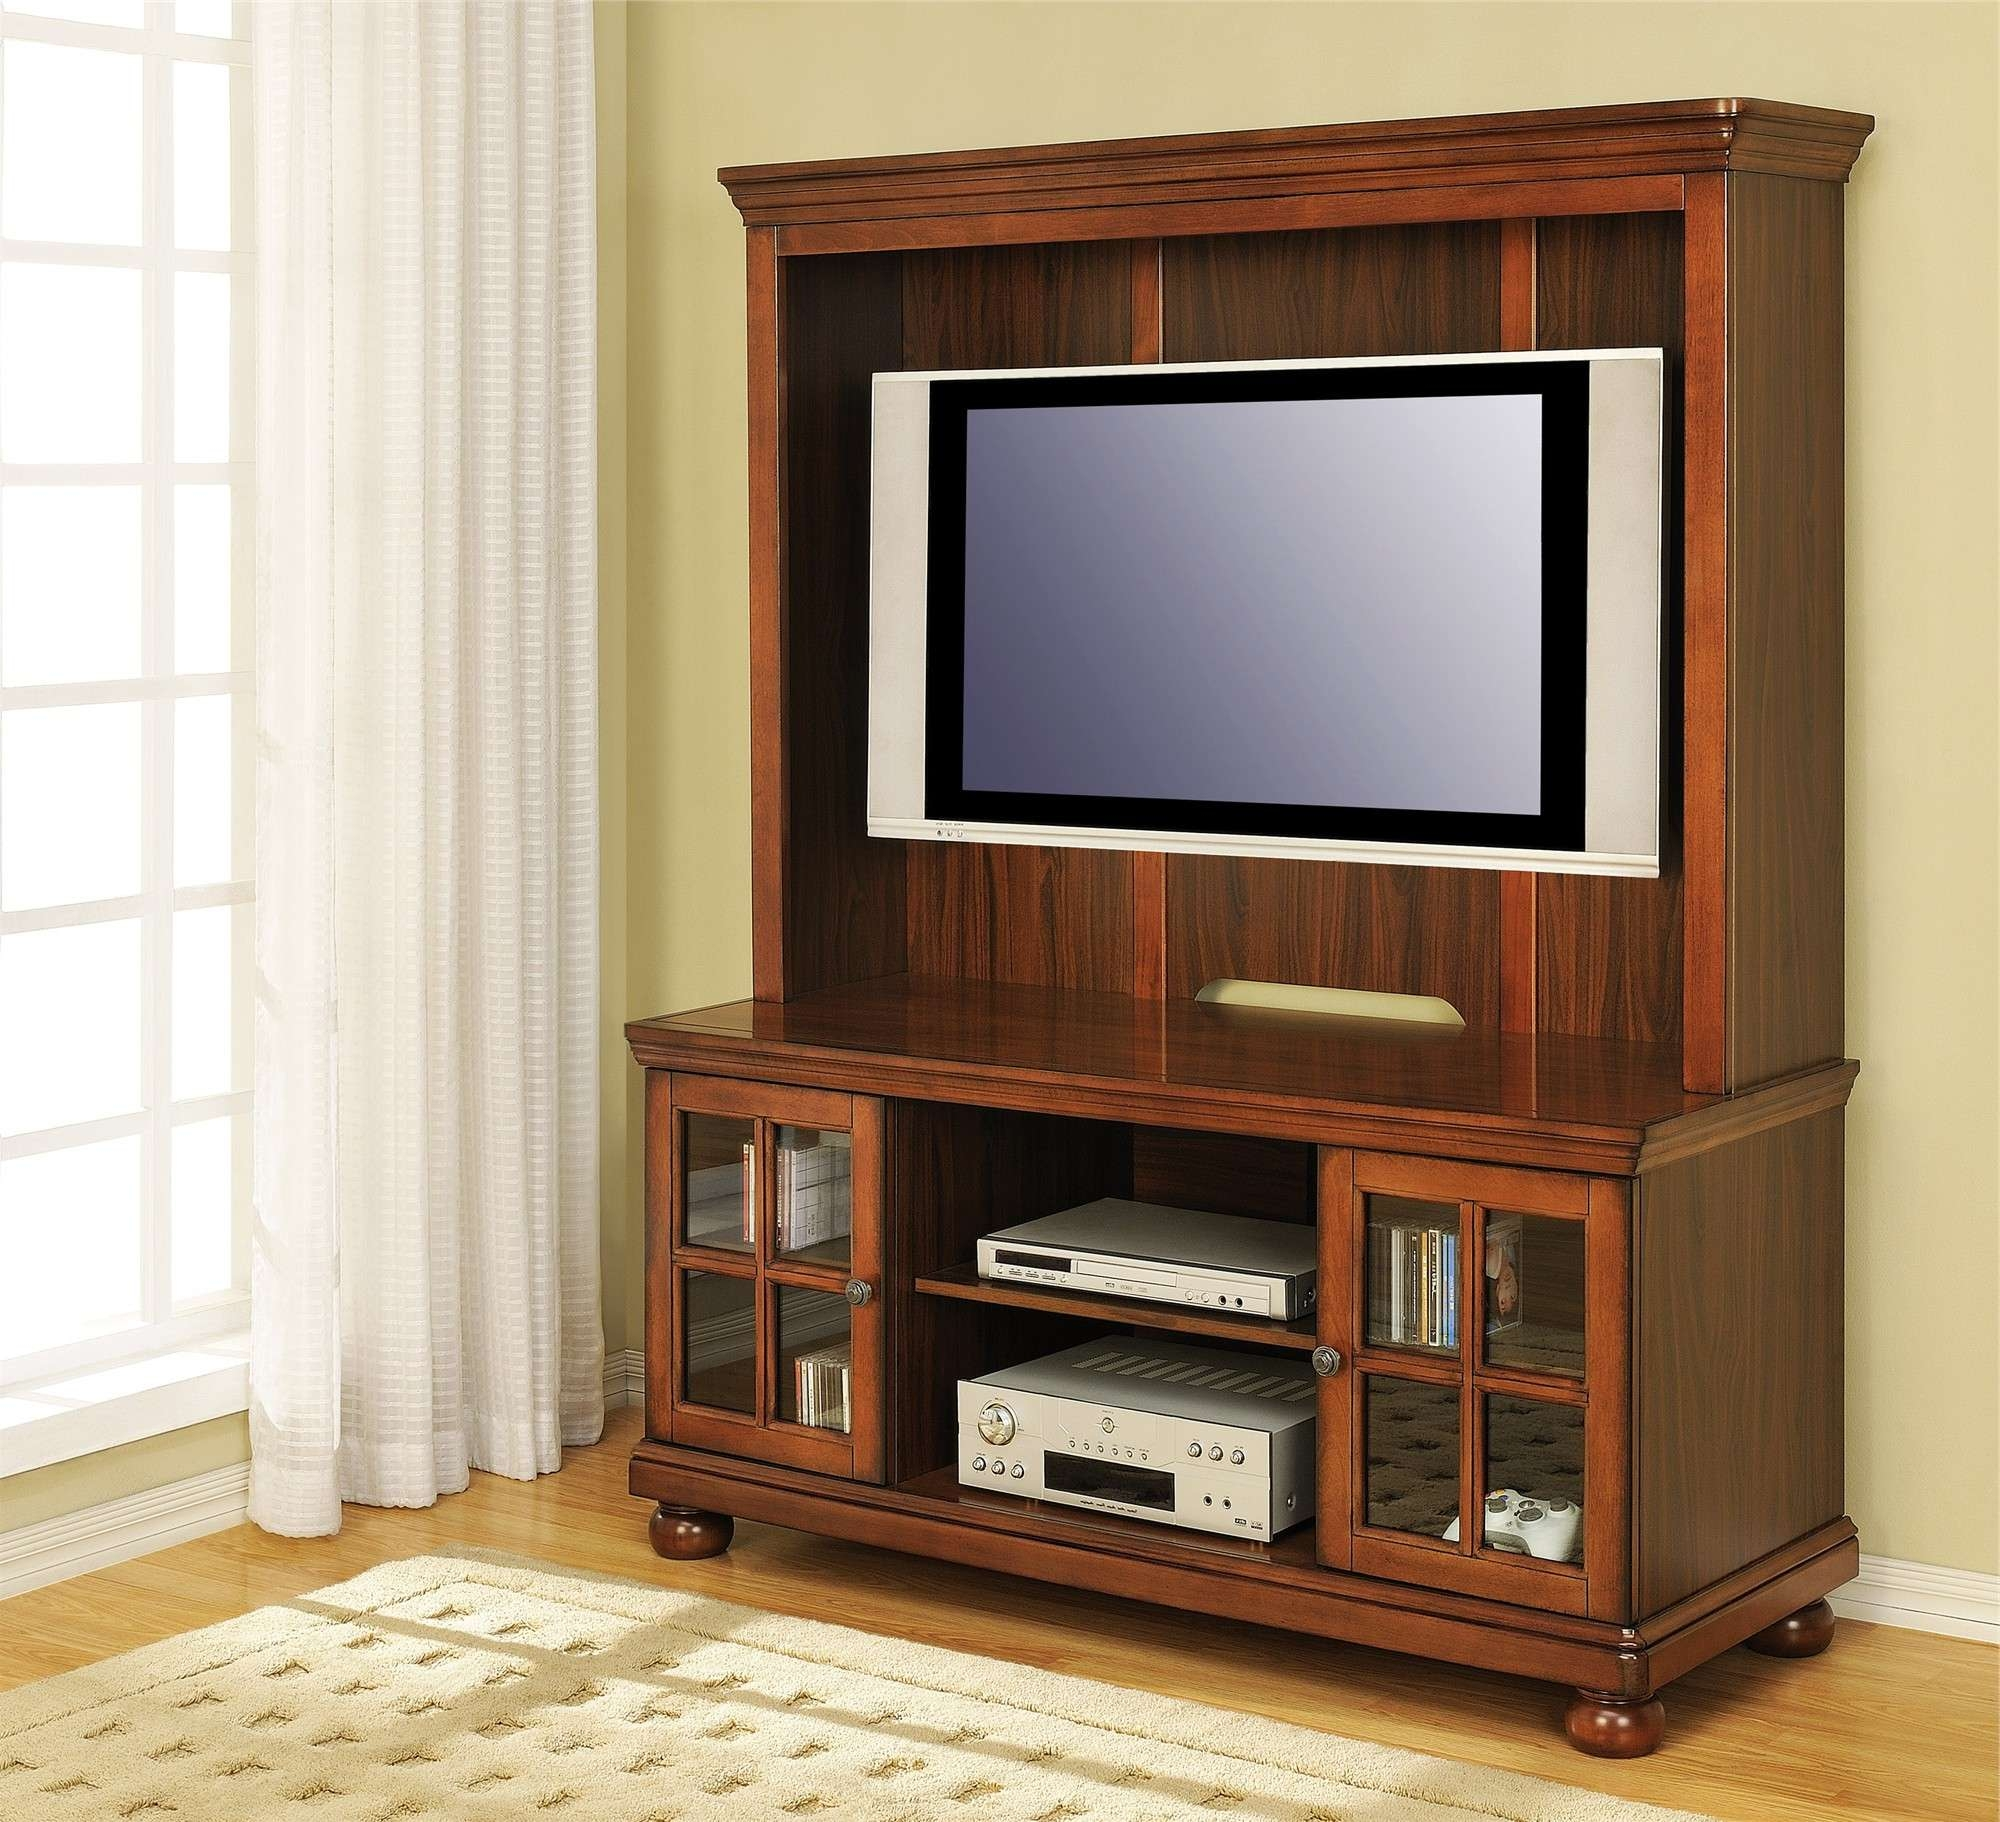 Superieur Brown Wooden Cabinet With Glass Door And Rectangle White Flat Throughout  Enclosed Tv Cabinets For Flat